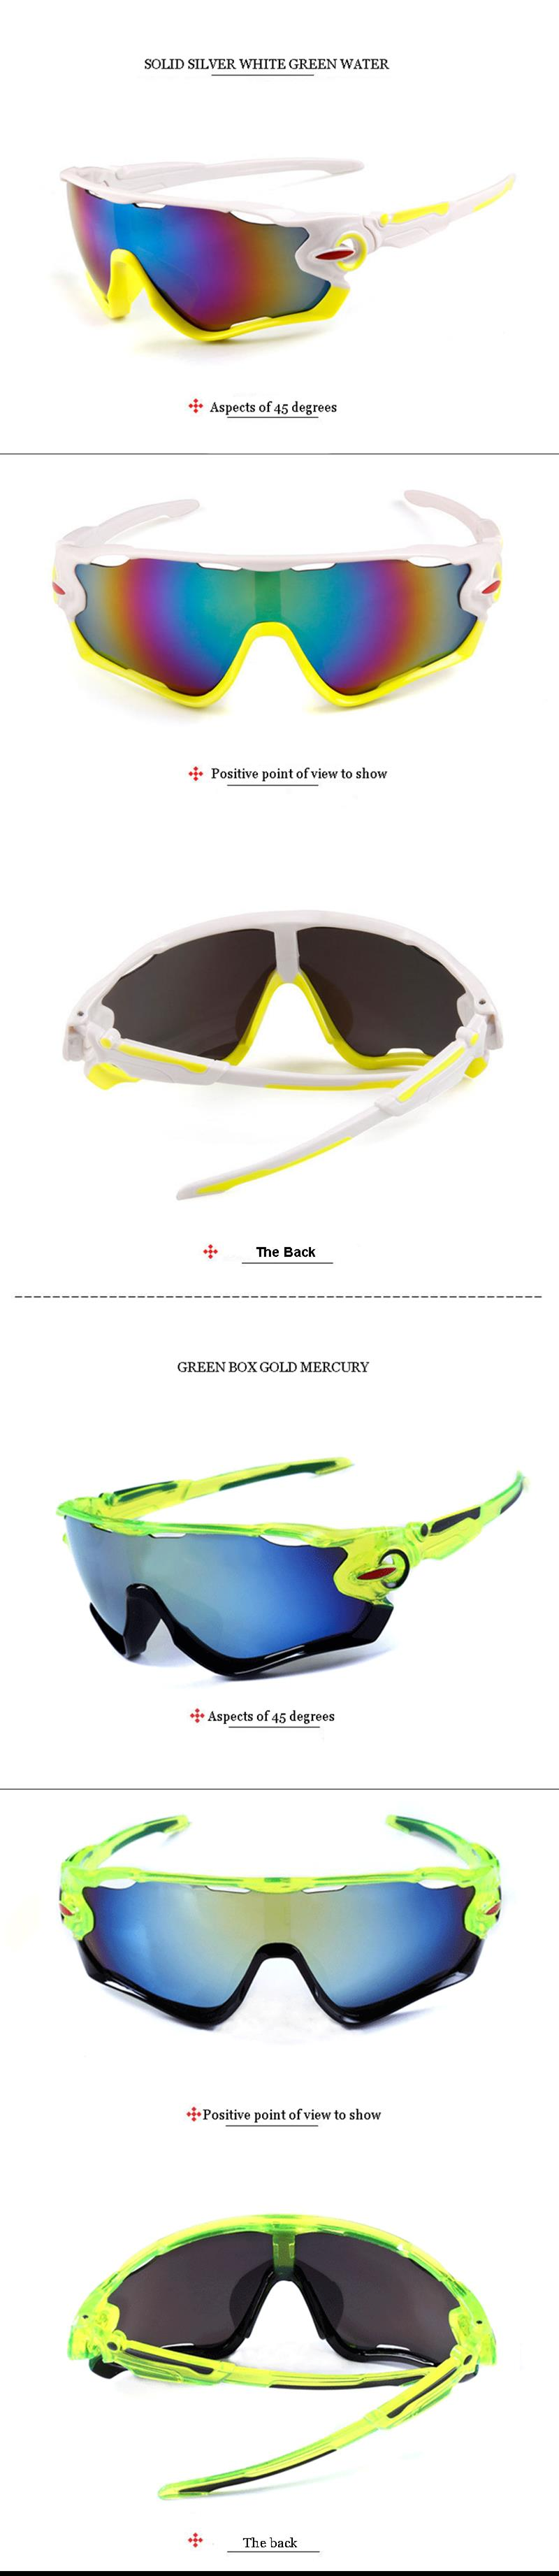 UV400 Cycling Sunglasses Sports Sunglasses Ride Glasses Eyelids Outdoor Mountain Bike Glasses